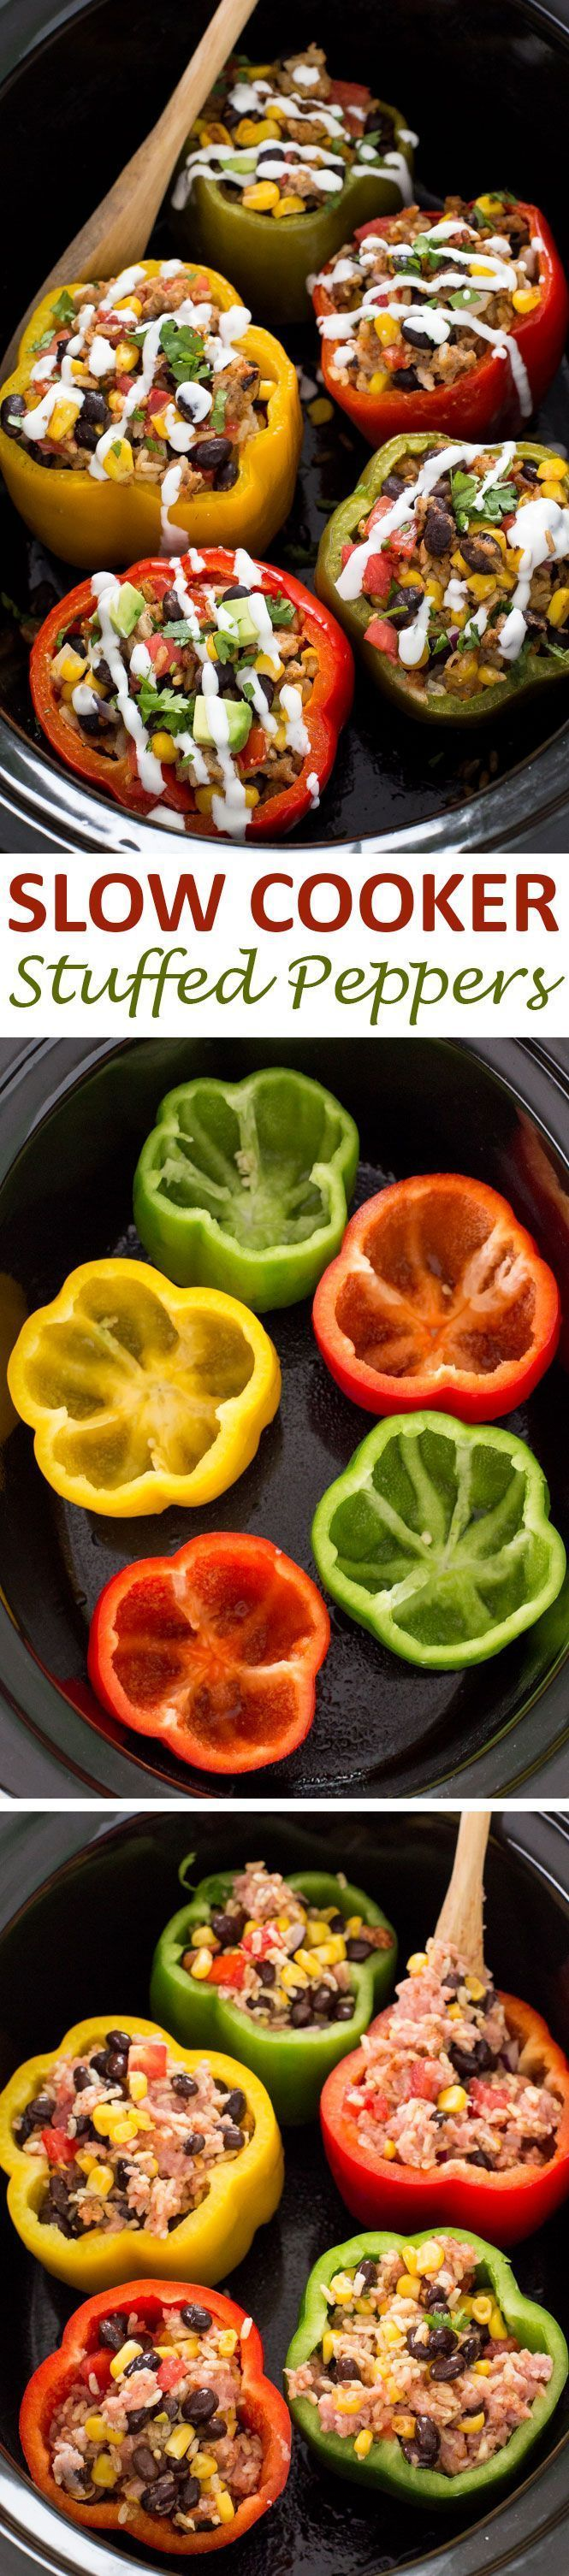 Mexican Slow Cooker Stuffed Peppers. Loaded with enchilada sauce, black beans and corn. A quick, easy and satisfying meal! | chefsavvy.com